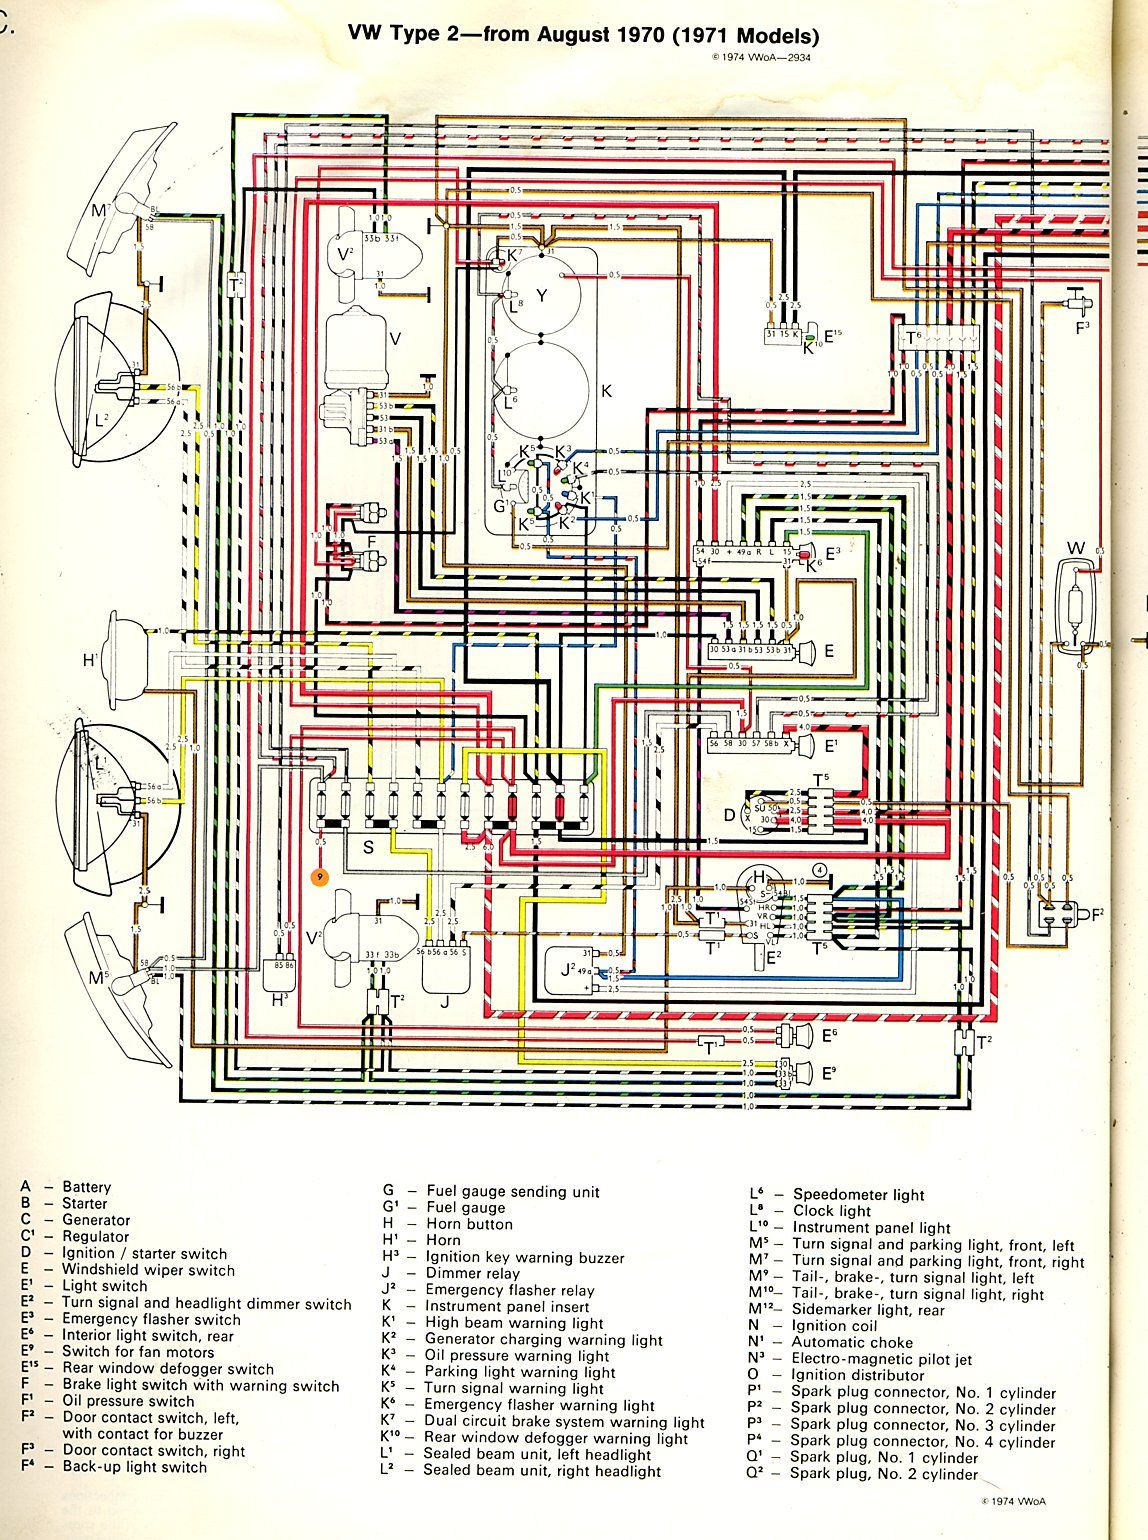 1981 vanagon fuse box diagram trusted wiring diagrams 86 vanagon wiring dimmer switch vanagon wiring diagram pdf residential electrical symbols \\u2022 cc fuse box diagram 1981 vanagon fuse box diagram